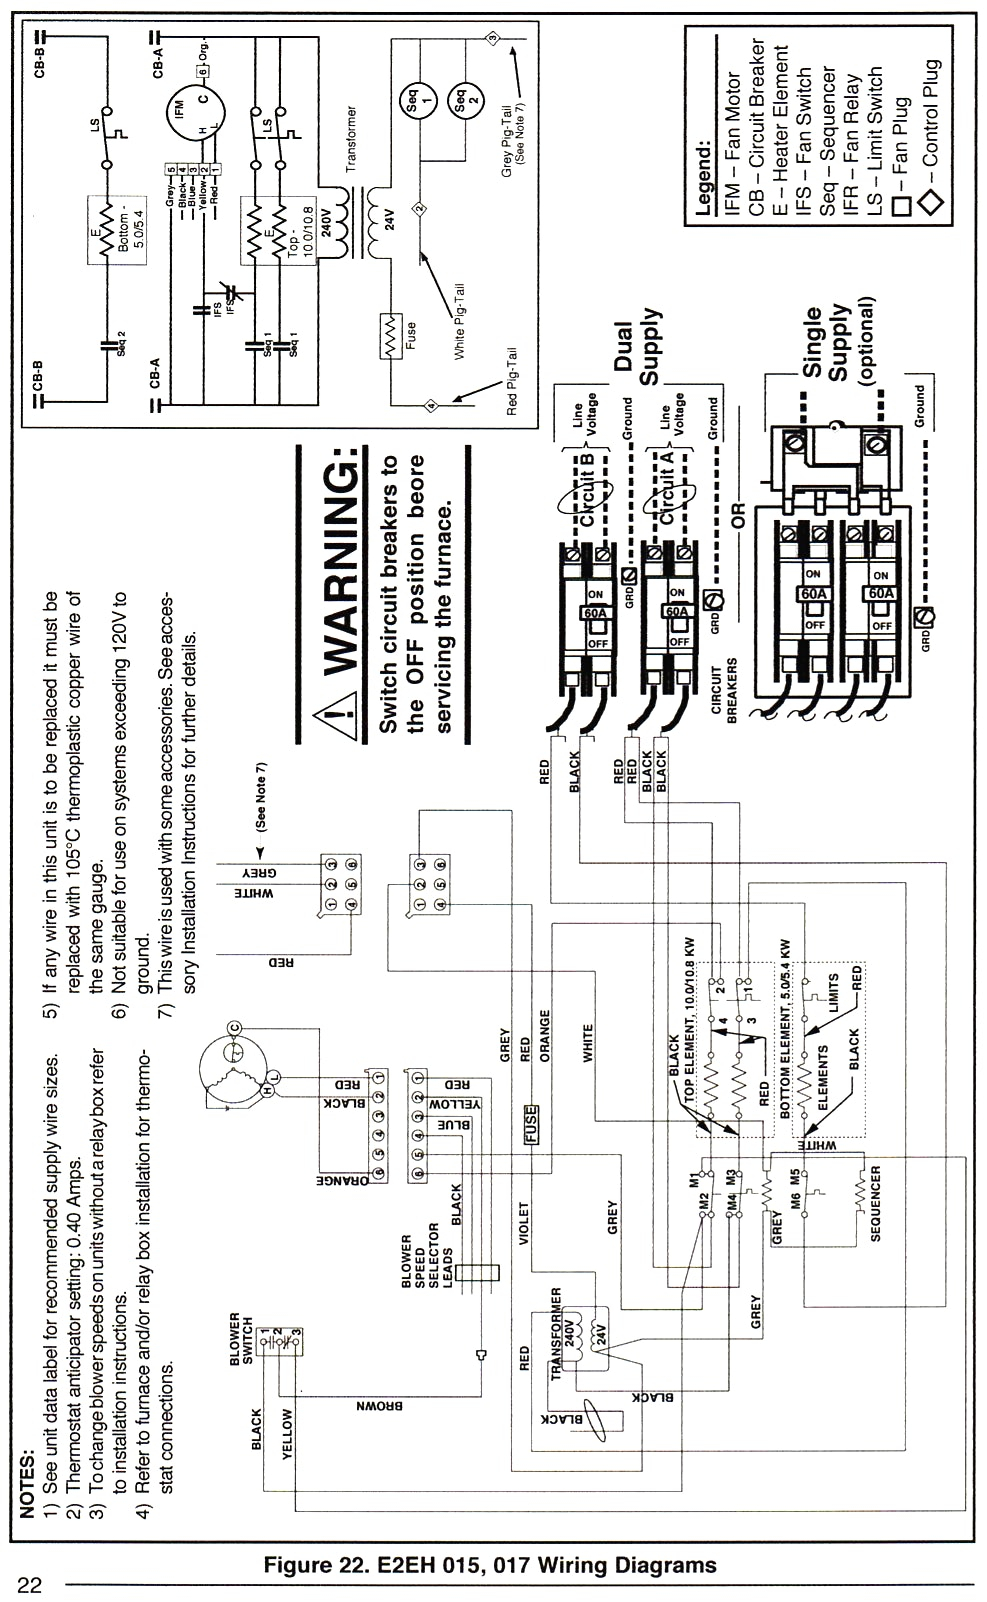 nordyne wiring diagram electric furnace Collection-Intertherm Electric Furnace Wiring Diagram For Nordyne Heat Pump Showy 6-h